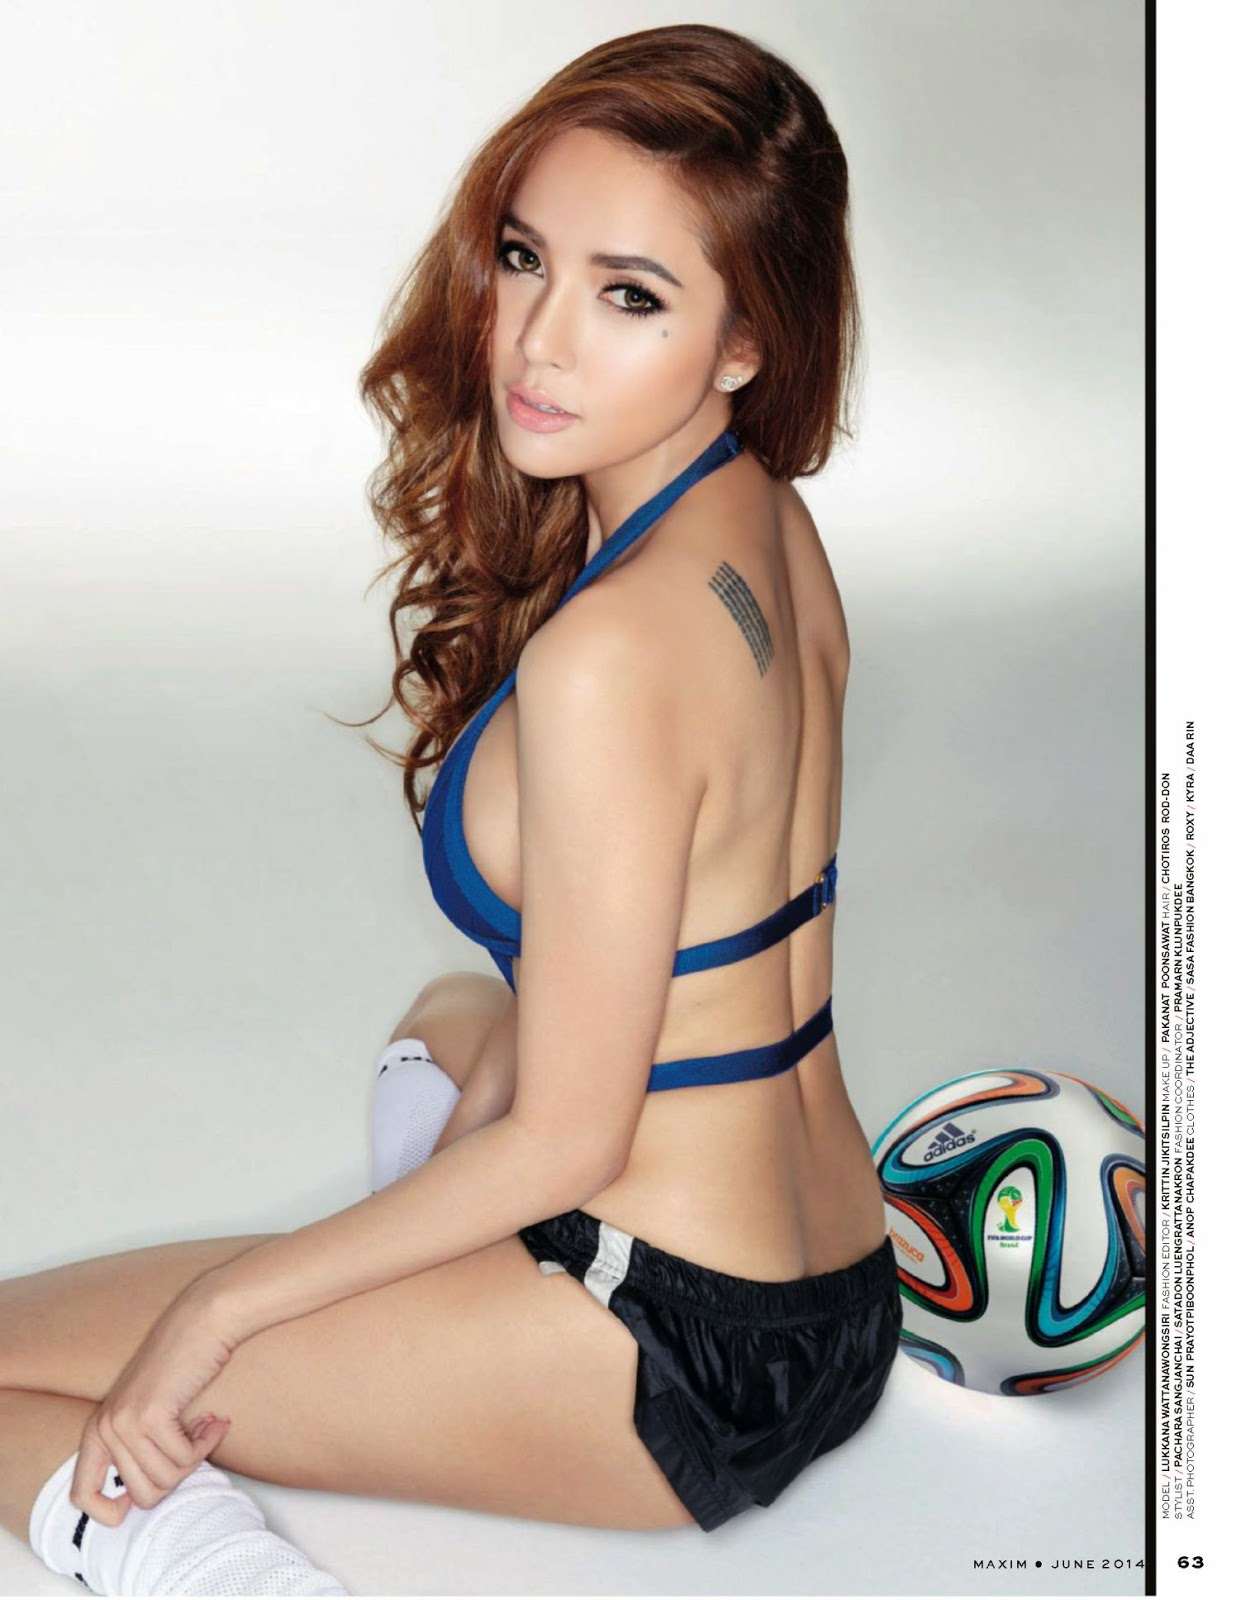 Thailand Models Hot Photoshoot For FIFA Fotaball World Cup